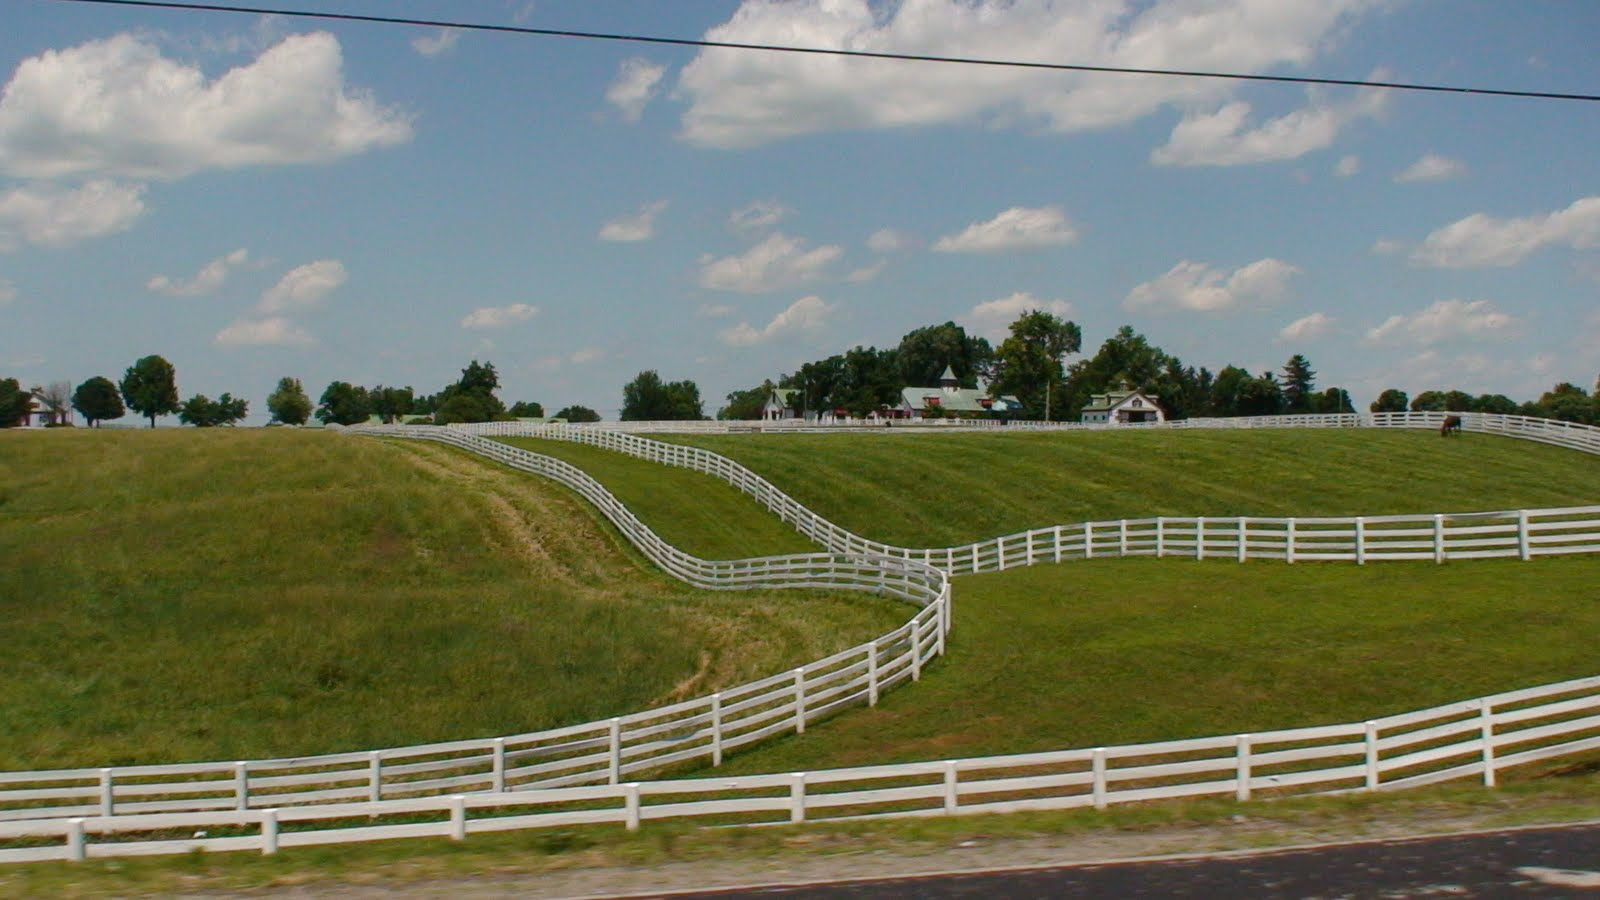 kentucky-farm-scenery